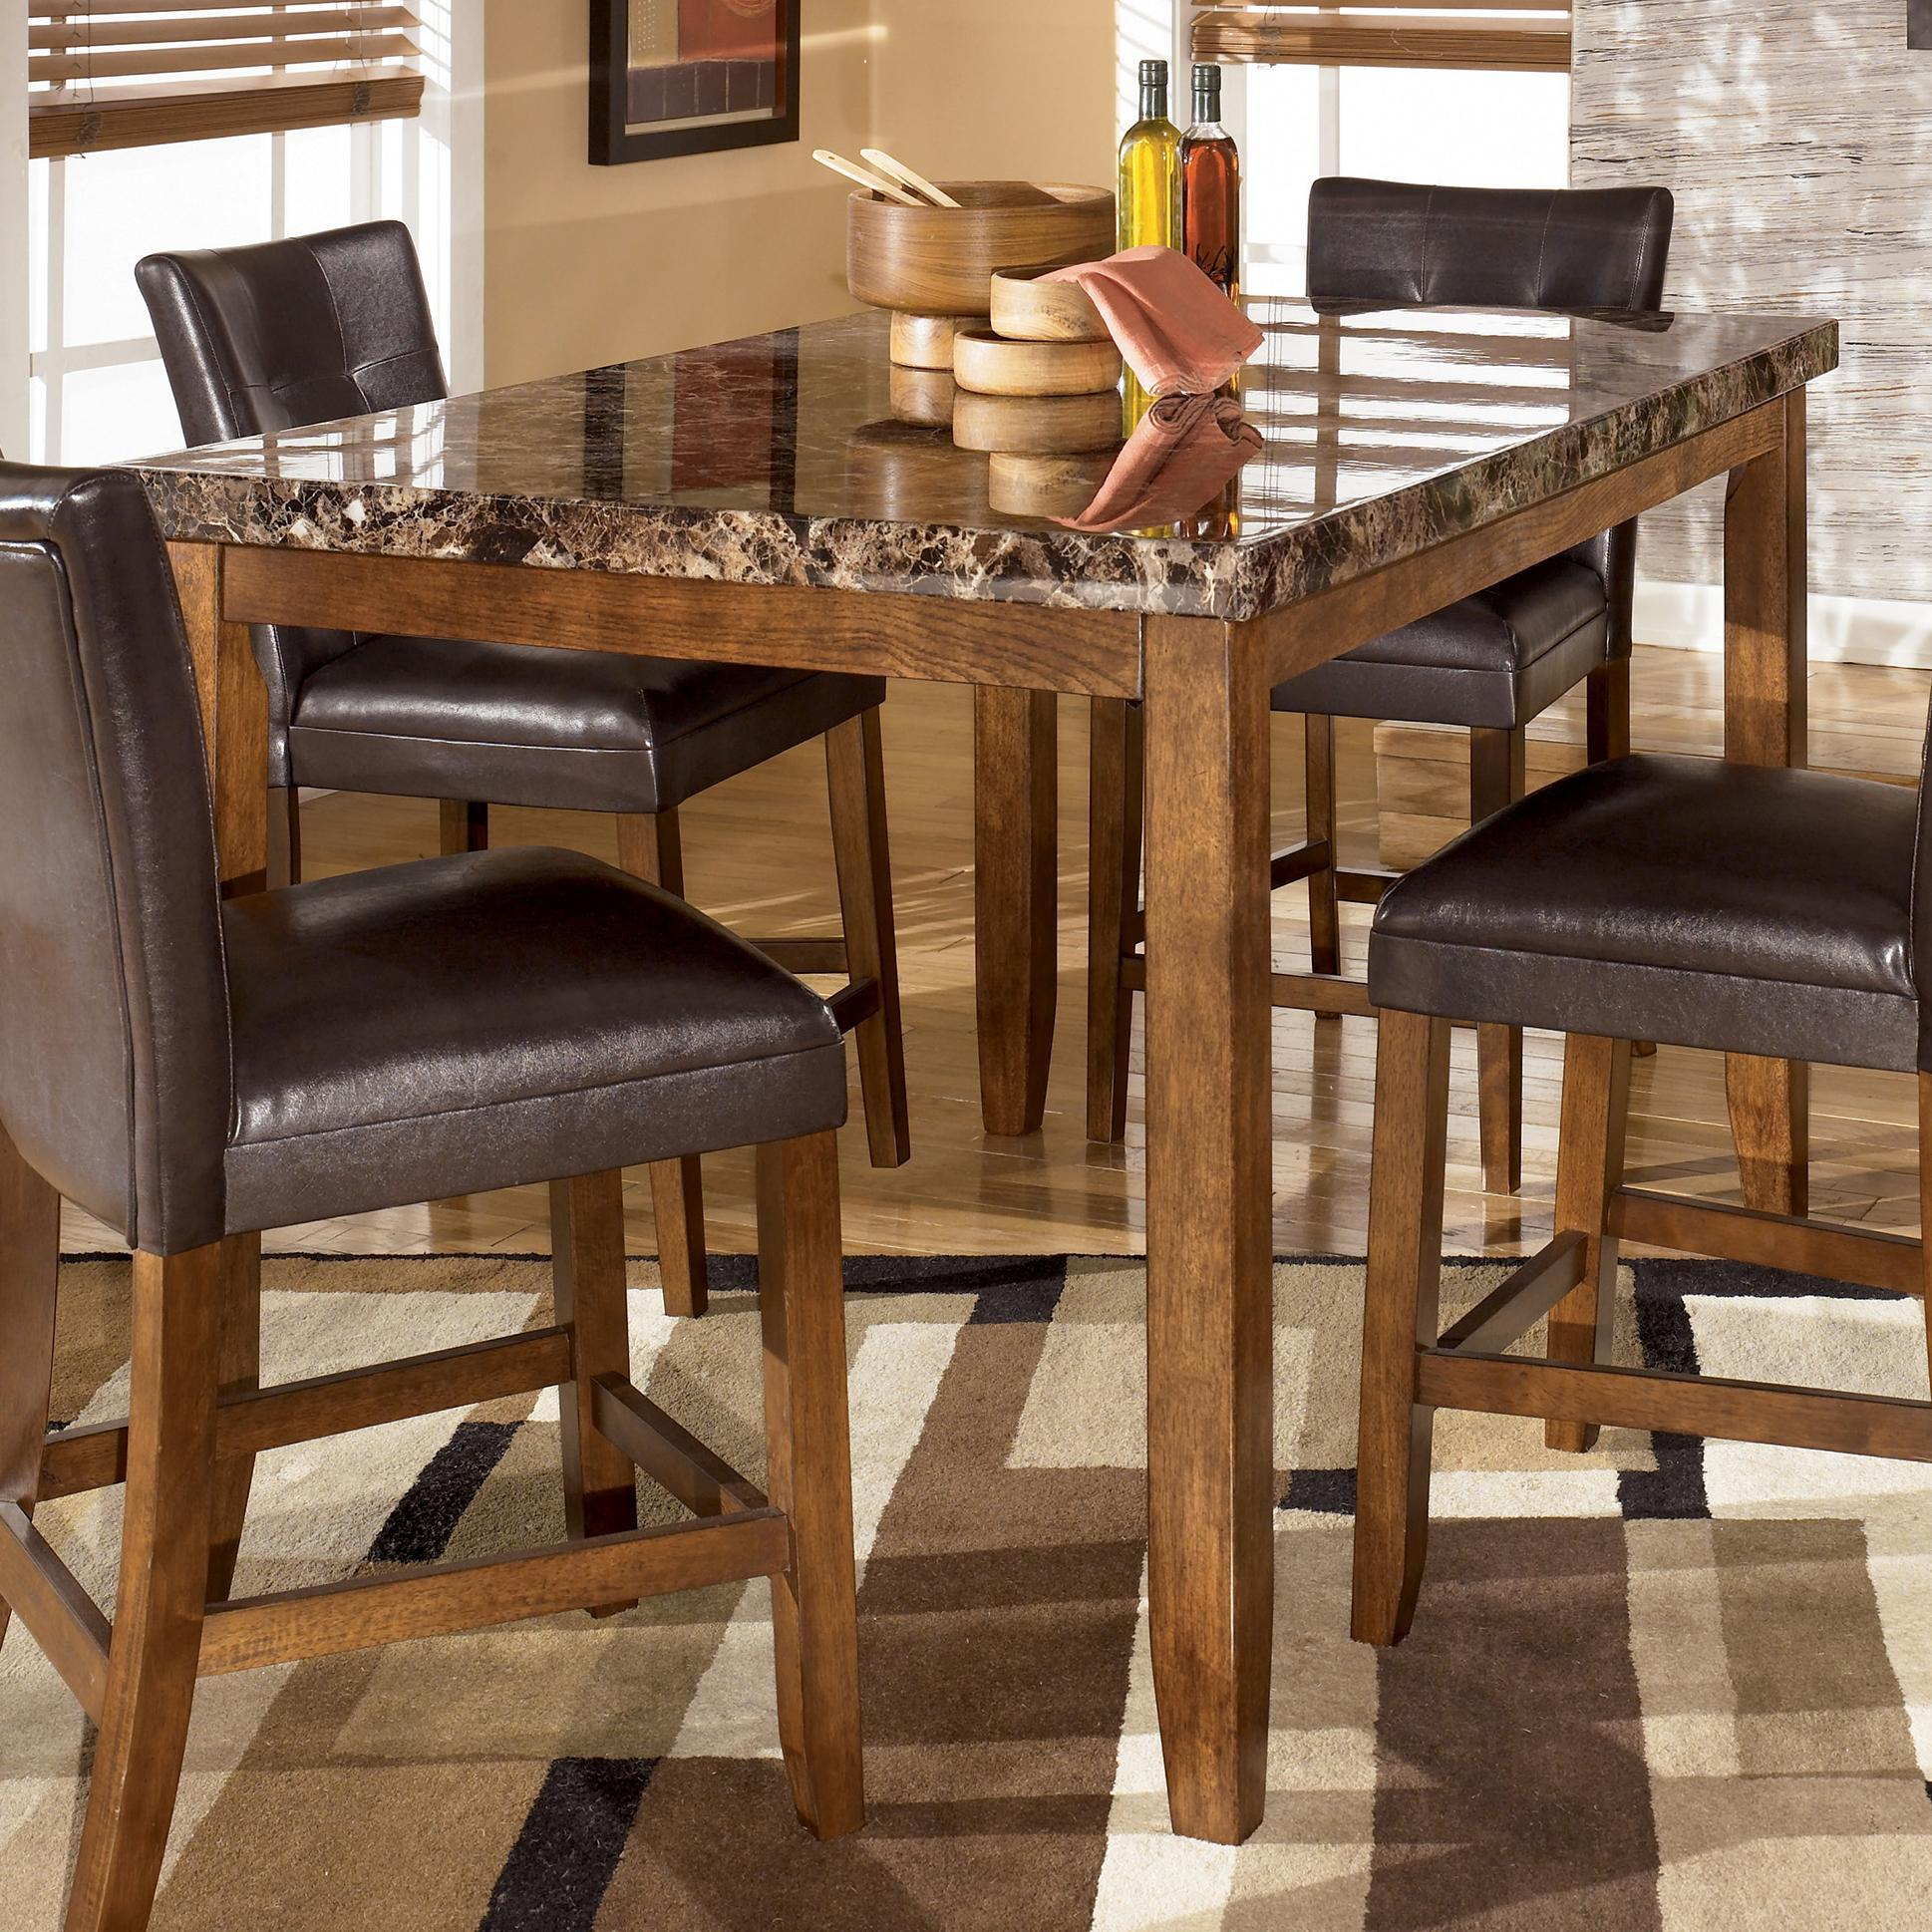 Lacey rectangular counter height table from signature design by ashley beverly hills furniture - Ashley kitchen tables ...